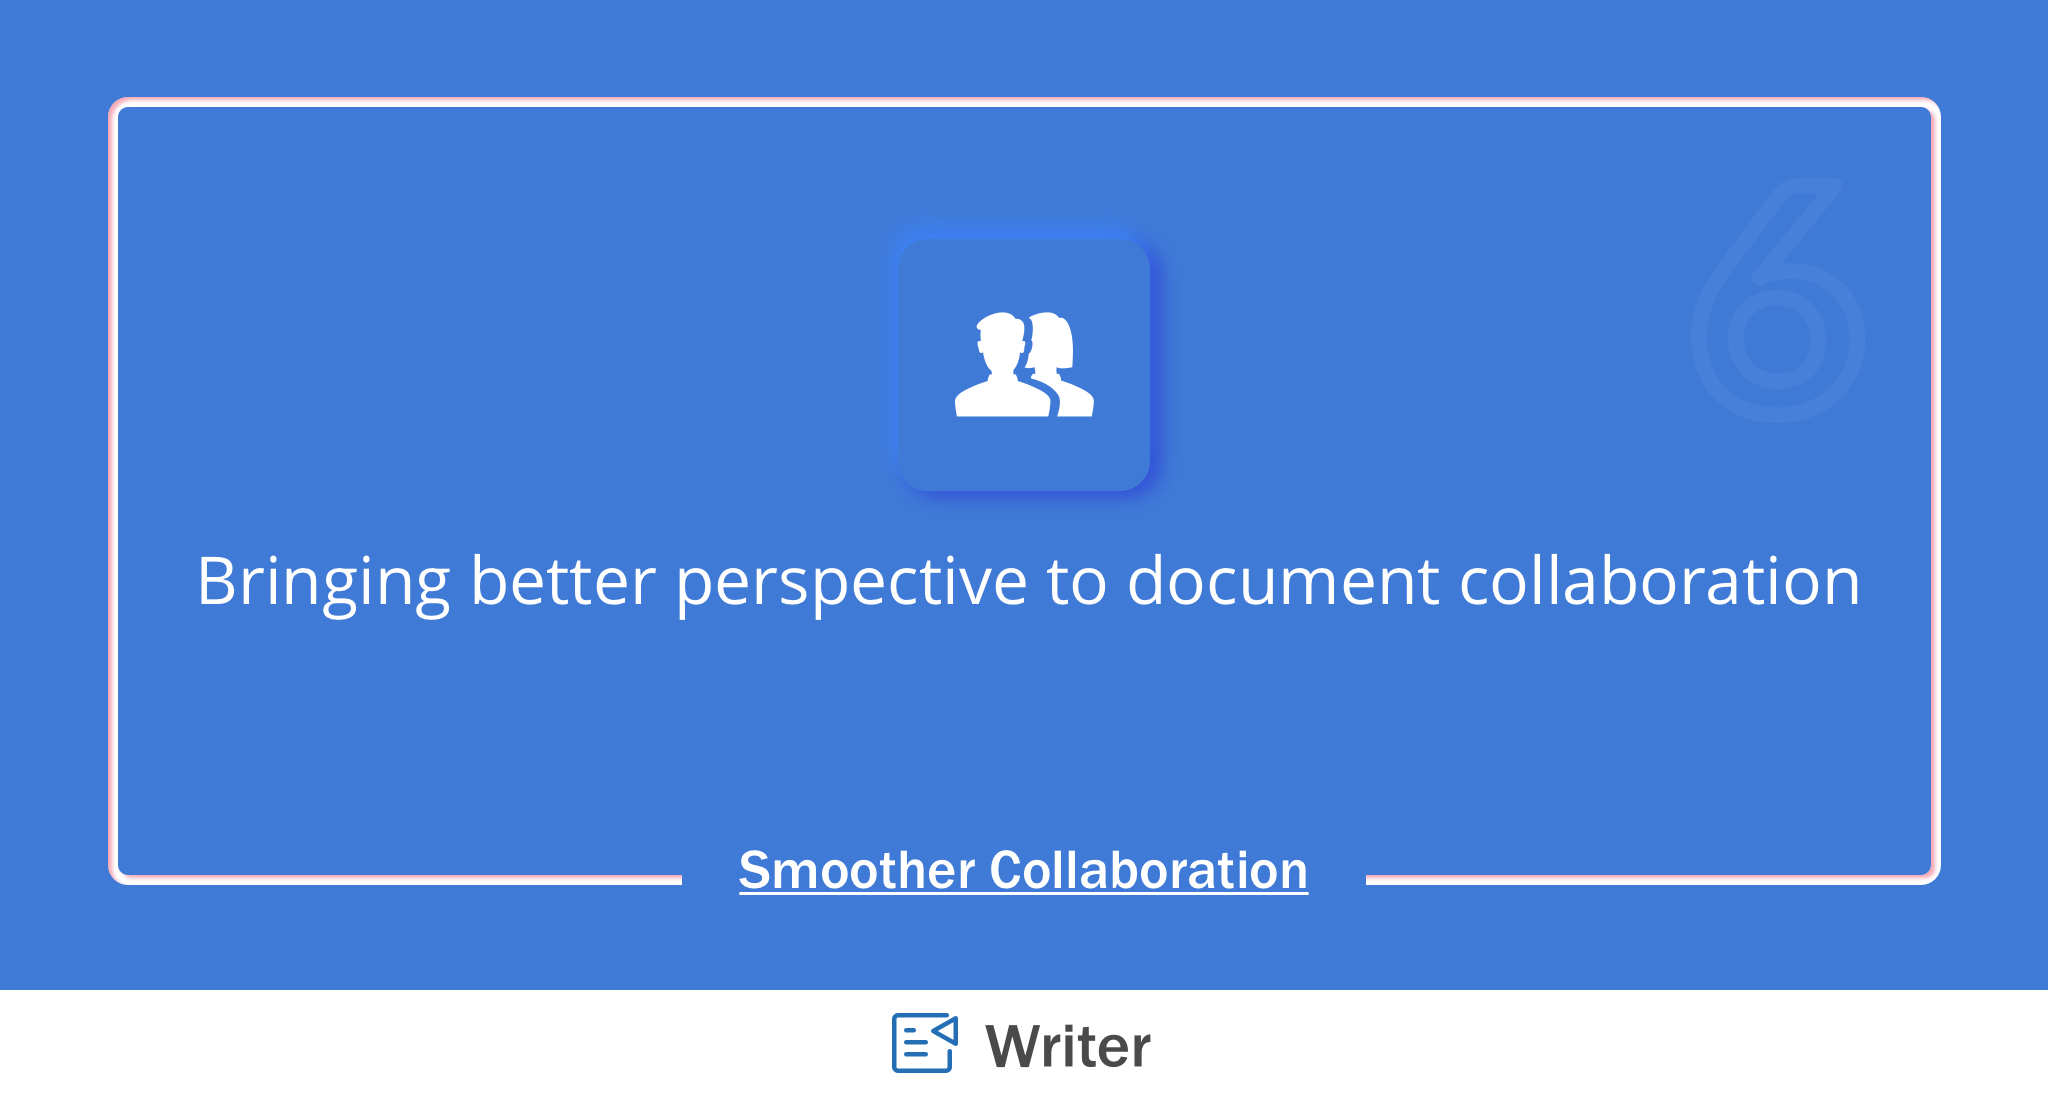 Introducing exceptional document collaboration experiences